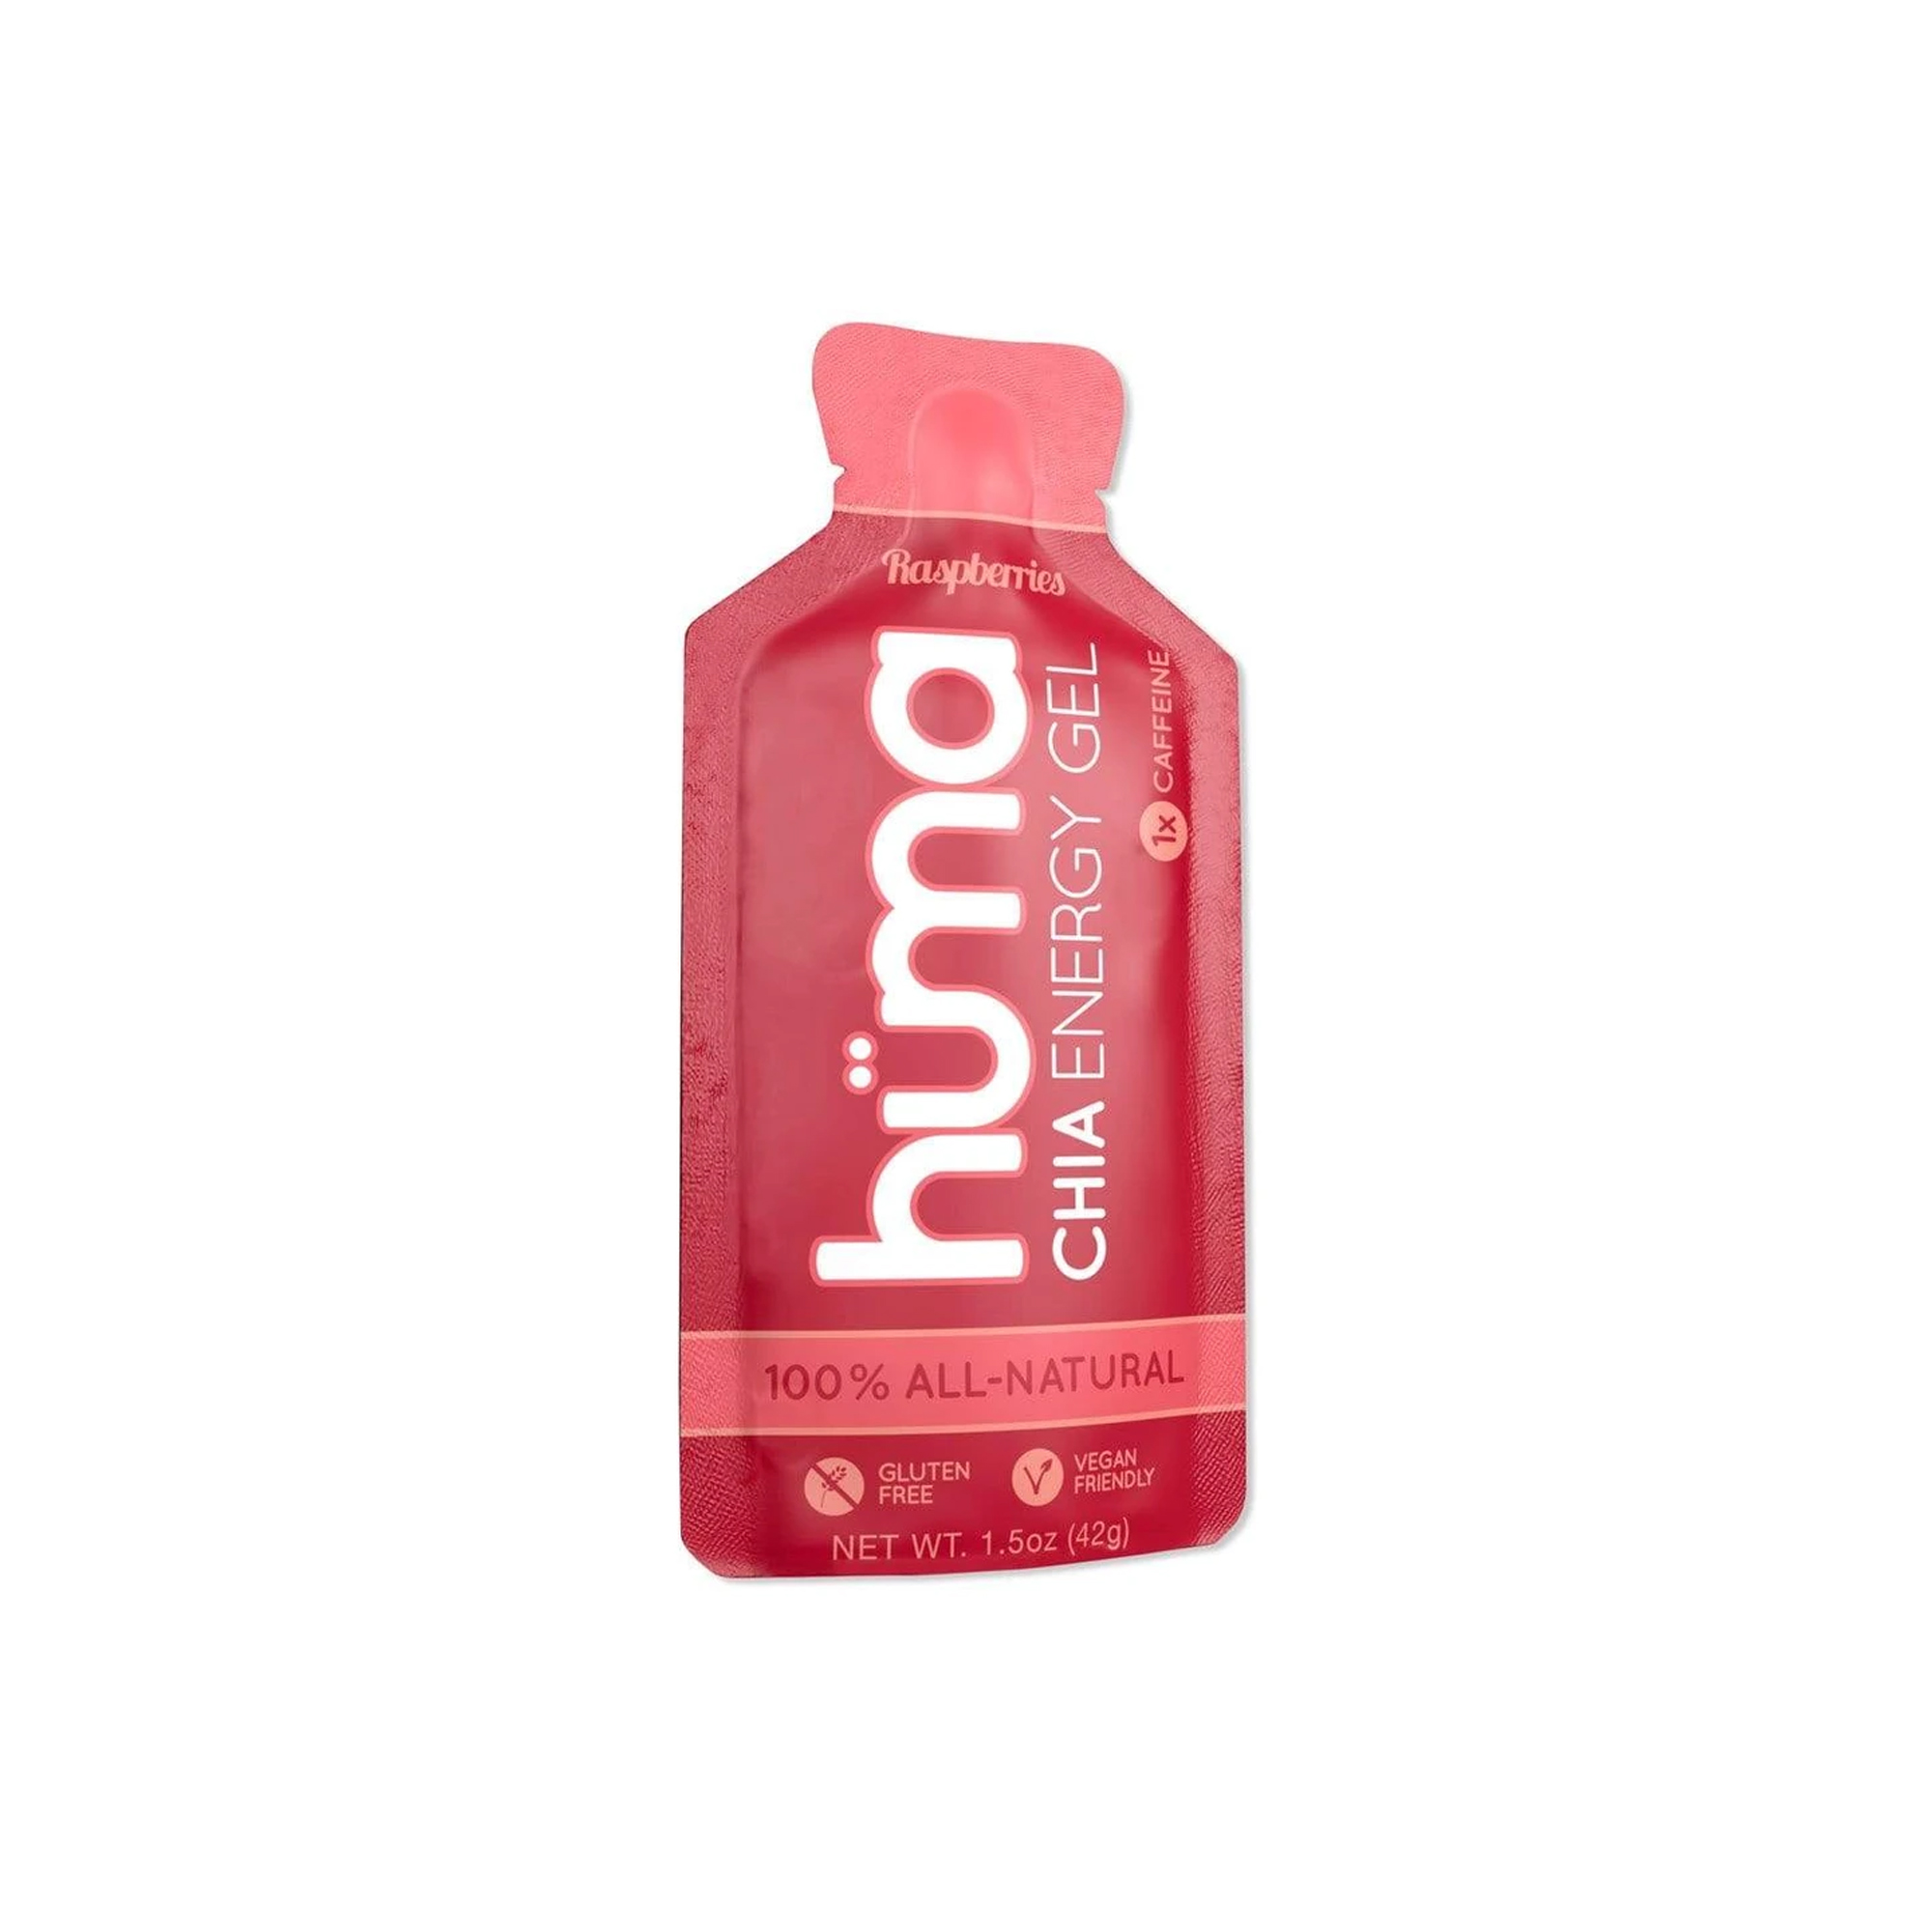 Hüma - Chia Energy Gel Raspberries 2x Caffeine